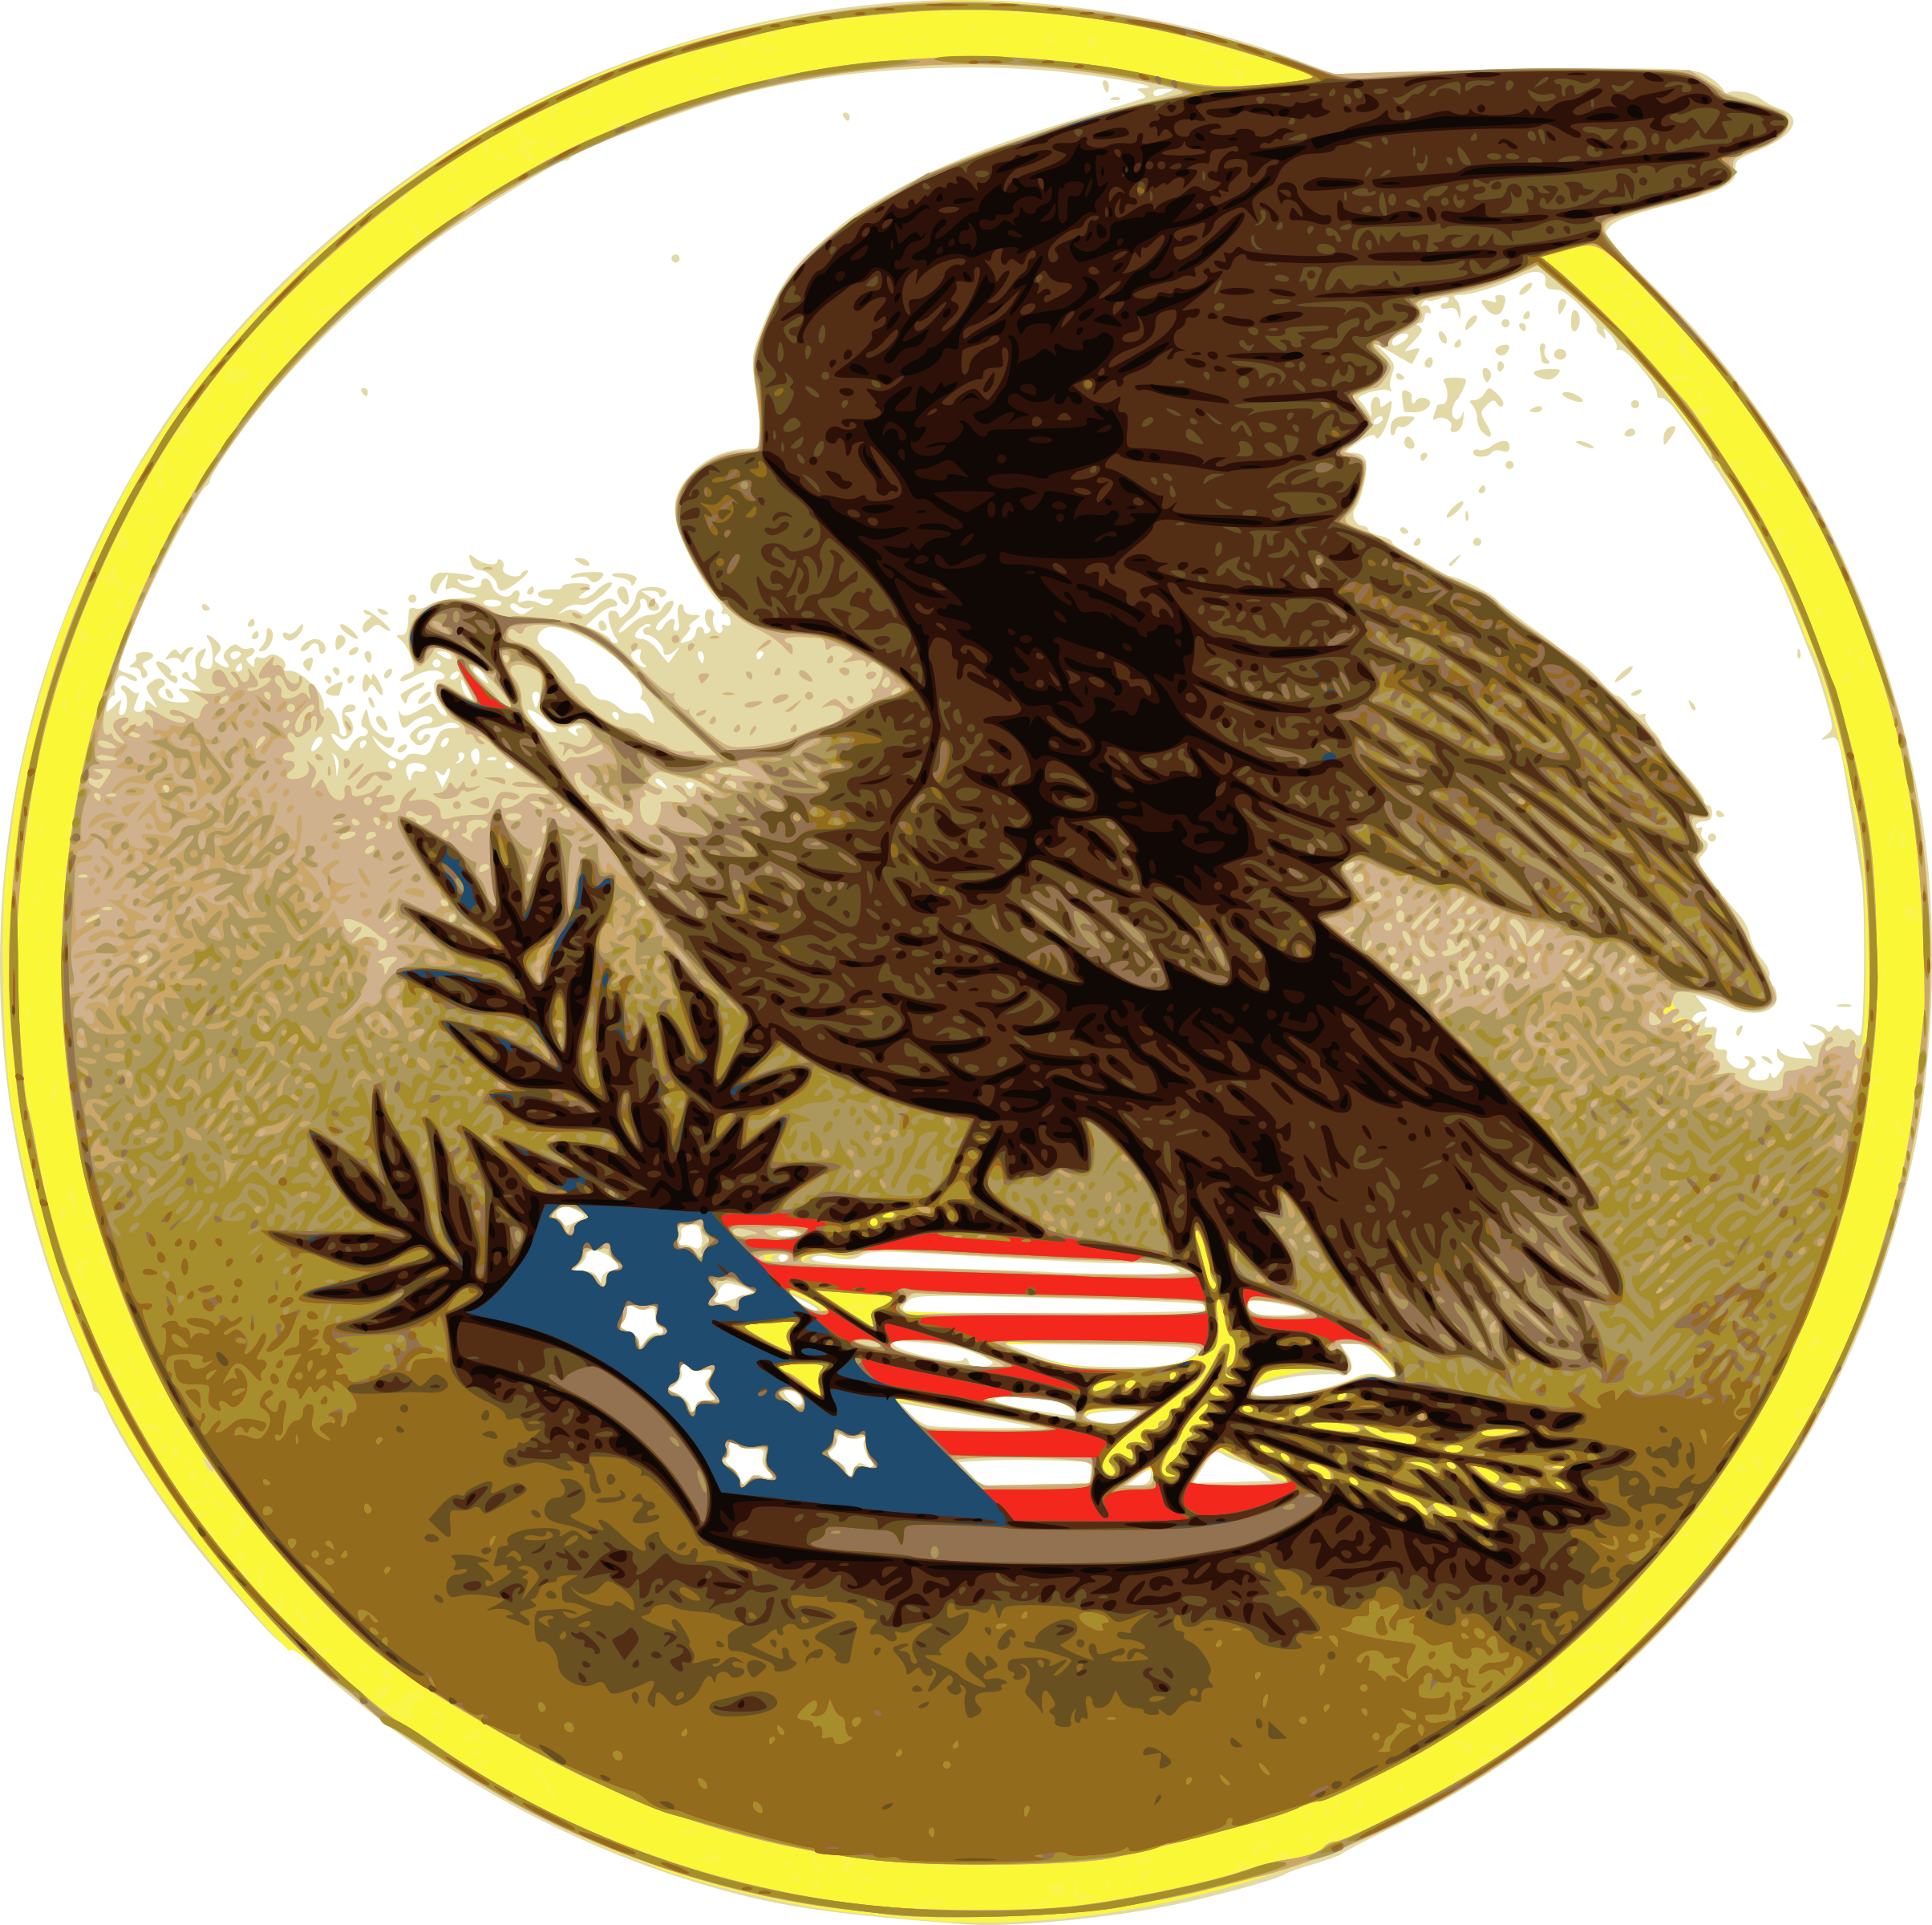 American eagle png. Icons free and downloads